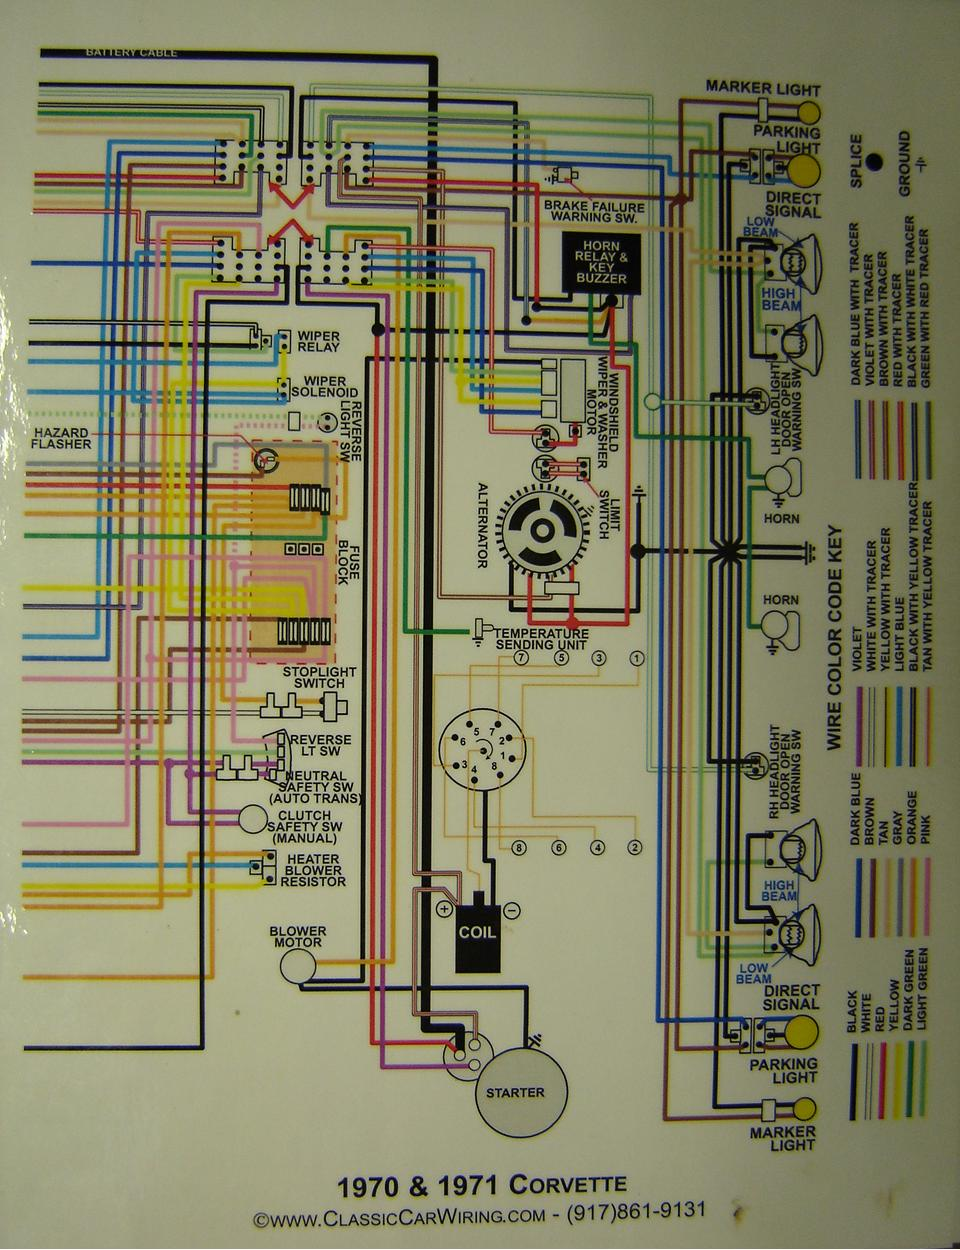 Wiring Diagram Besides 70 Chevelle Wiring Diagram On 1972 Chevy Nova